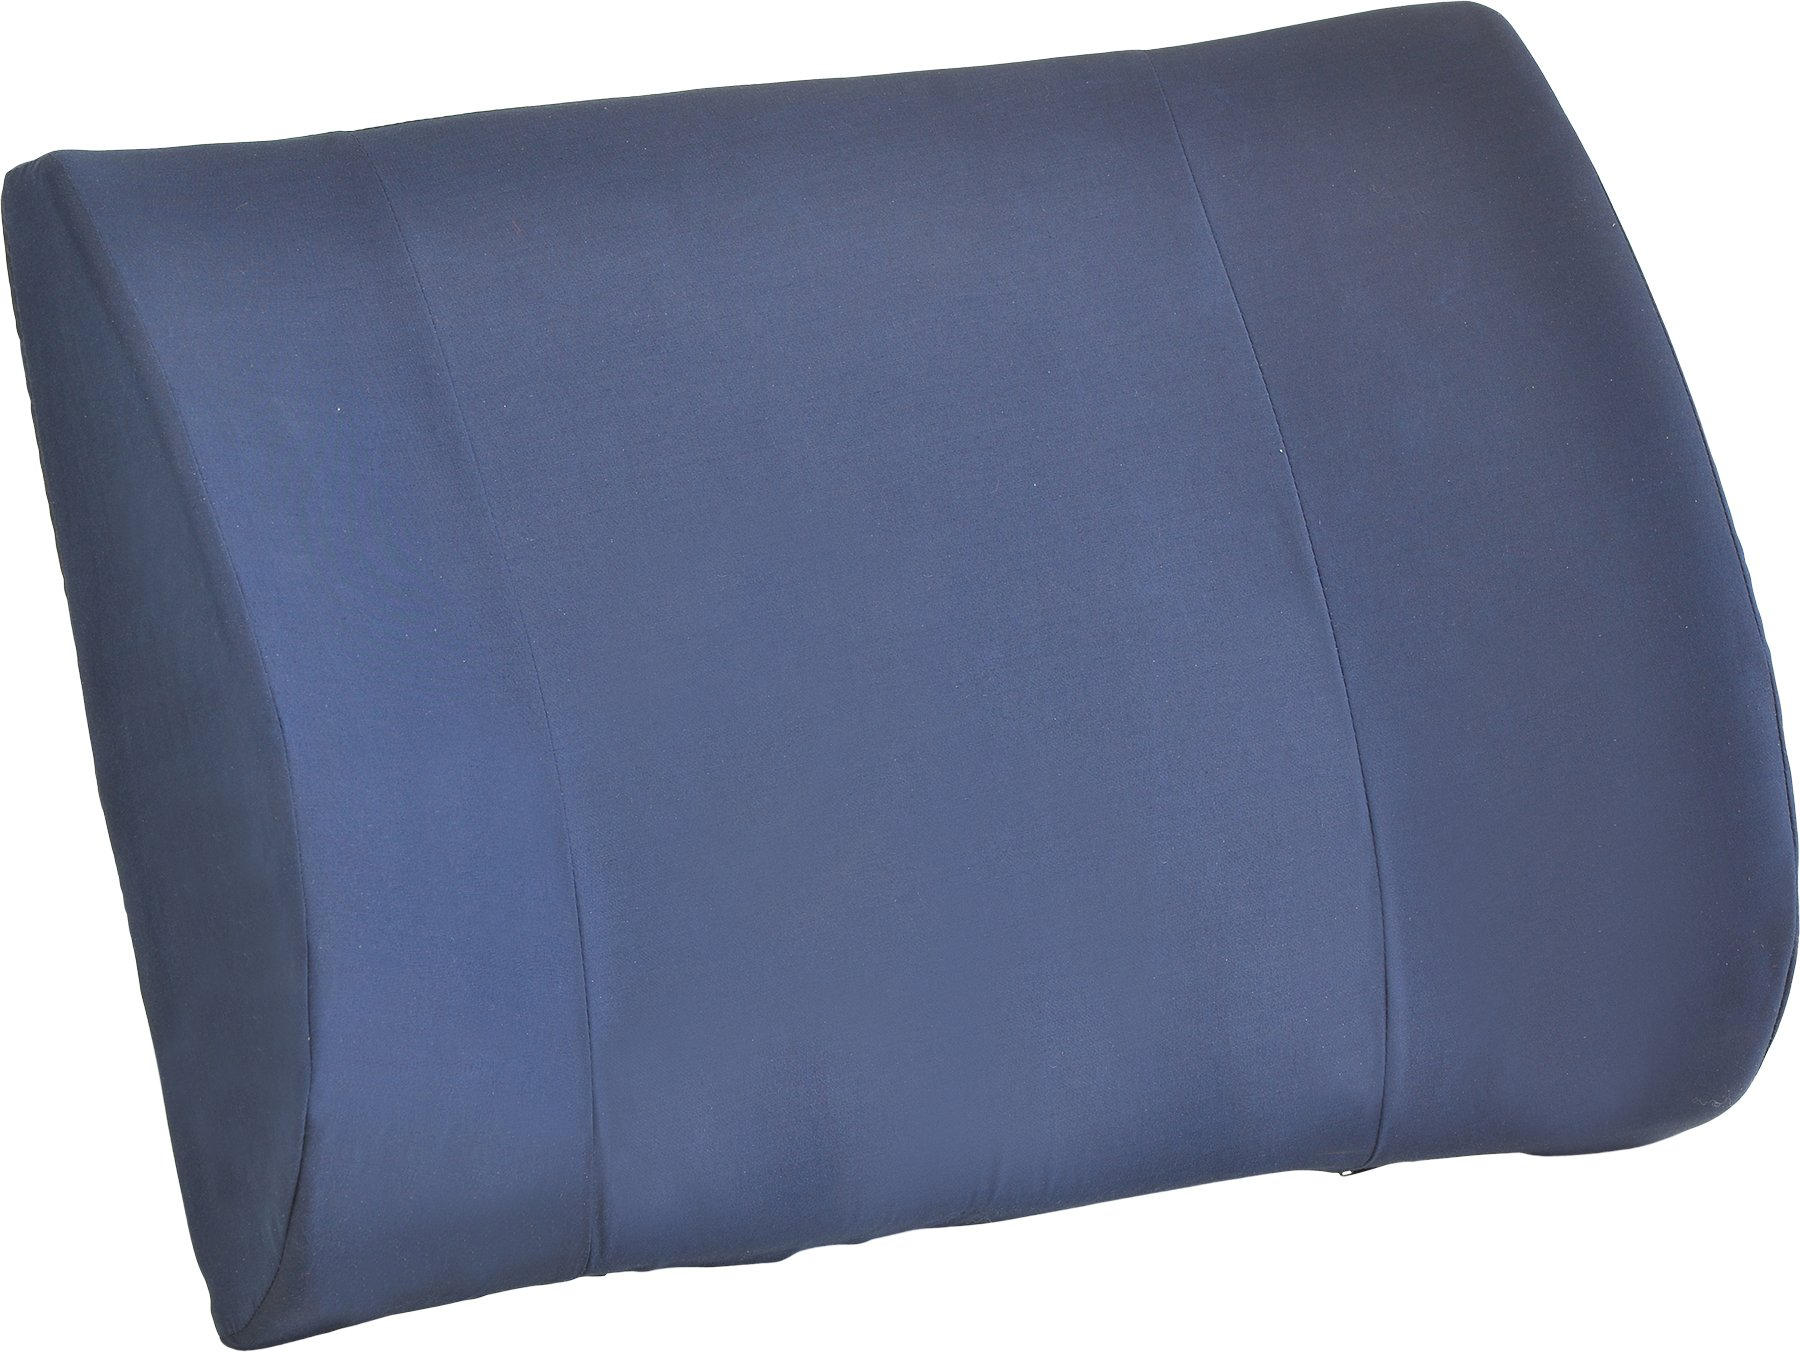 NOVA Medical Products Wide Lumbar Cushion, Blue, 1.50 Pound